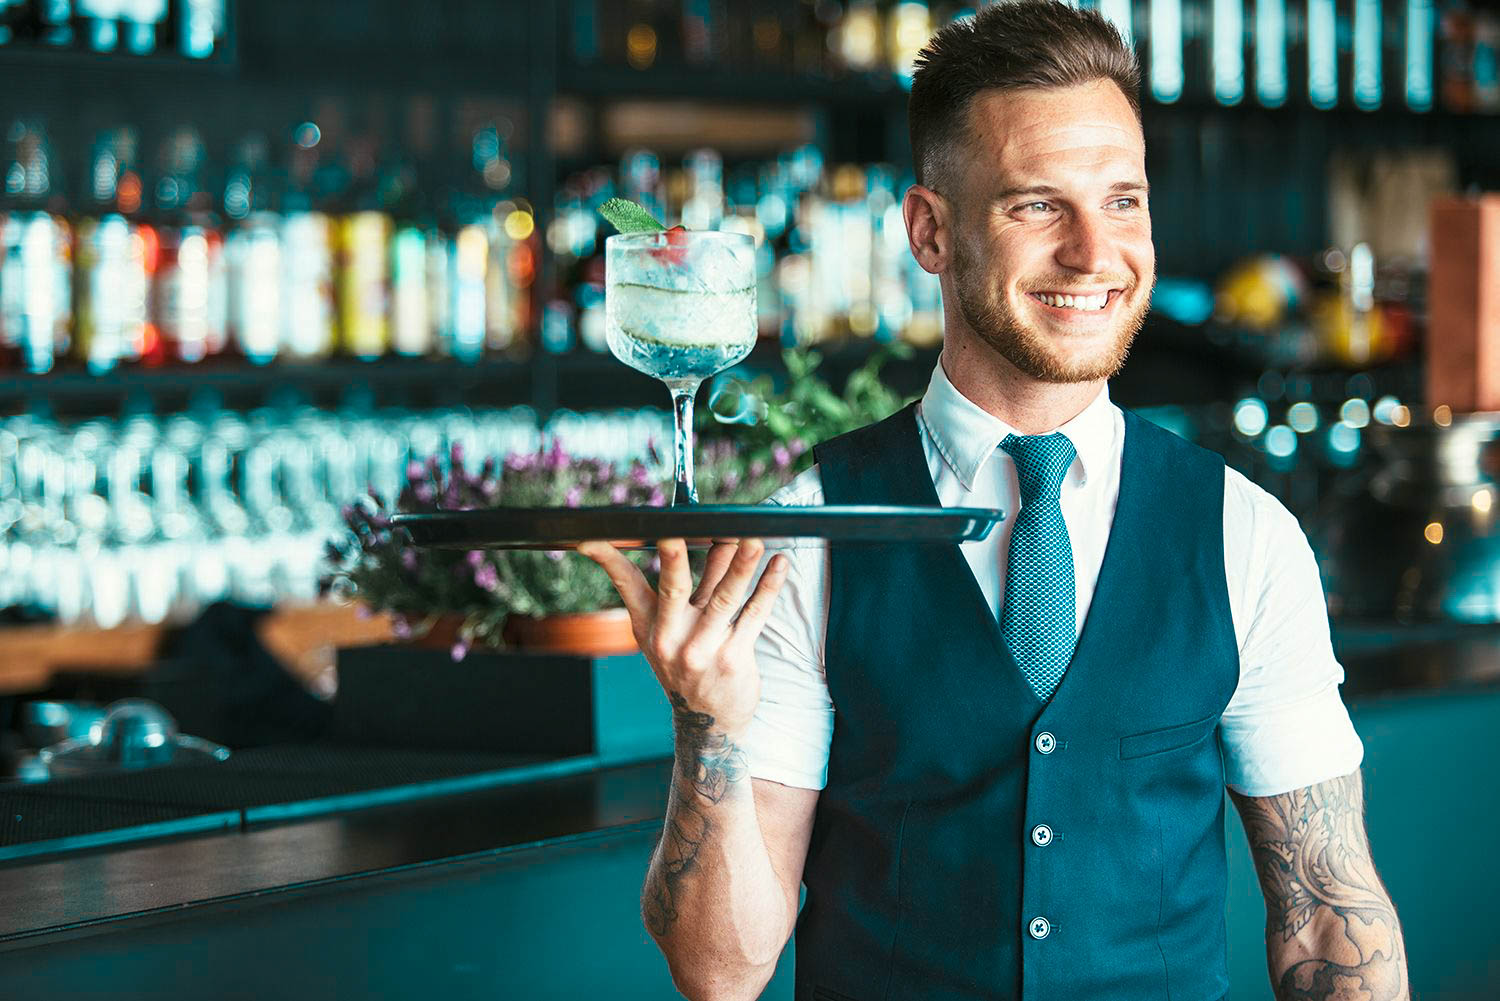 Waitstaff serve better cocktails with training